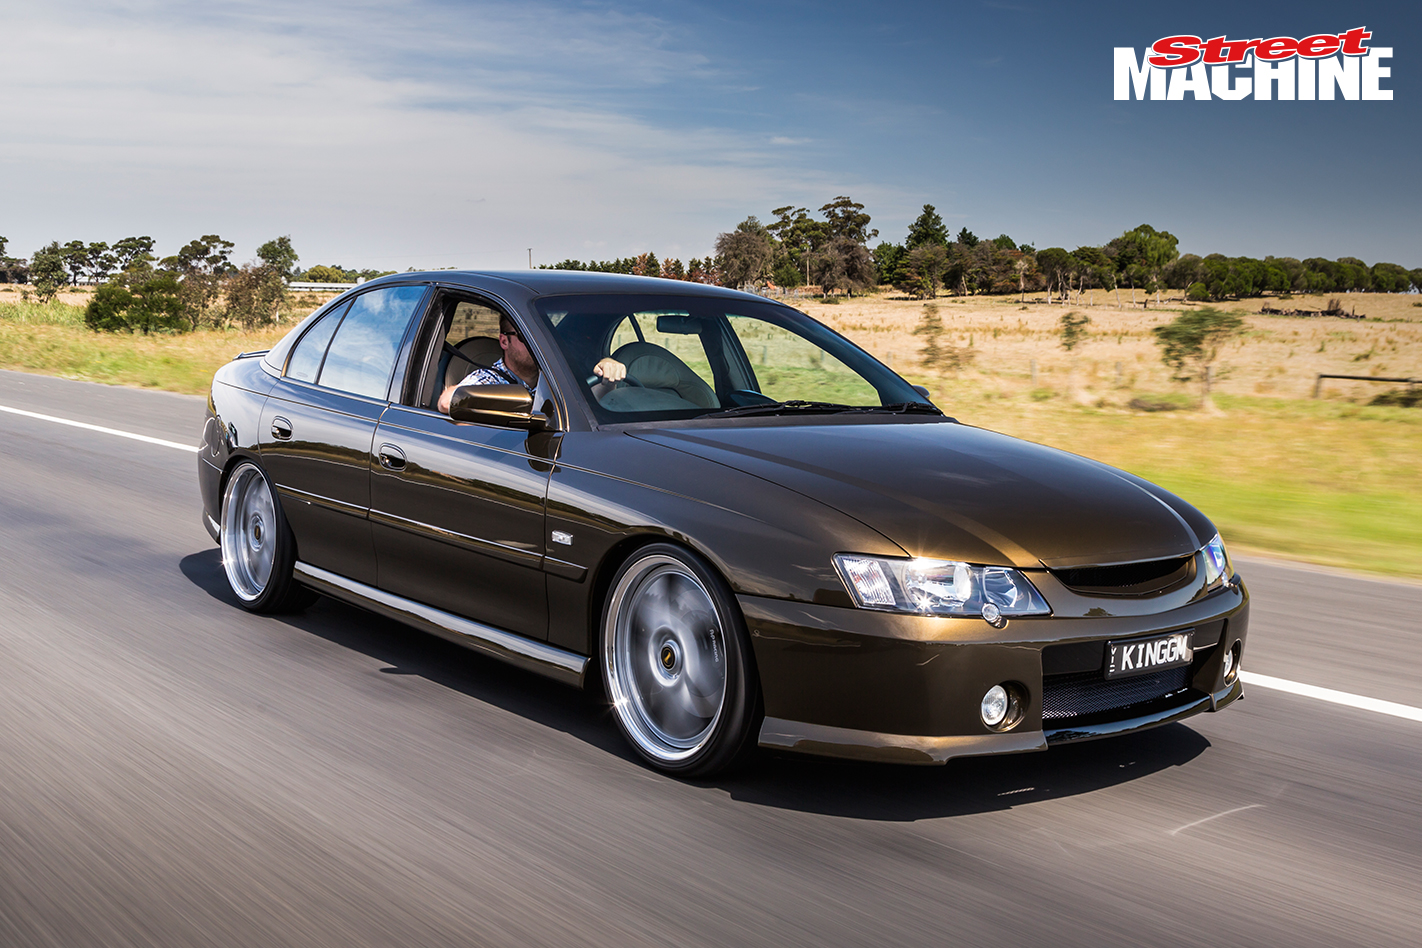 Turbo VY Commodore KINGGM 5 Nw